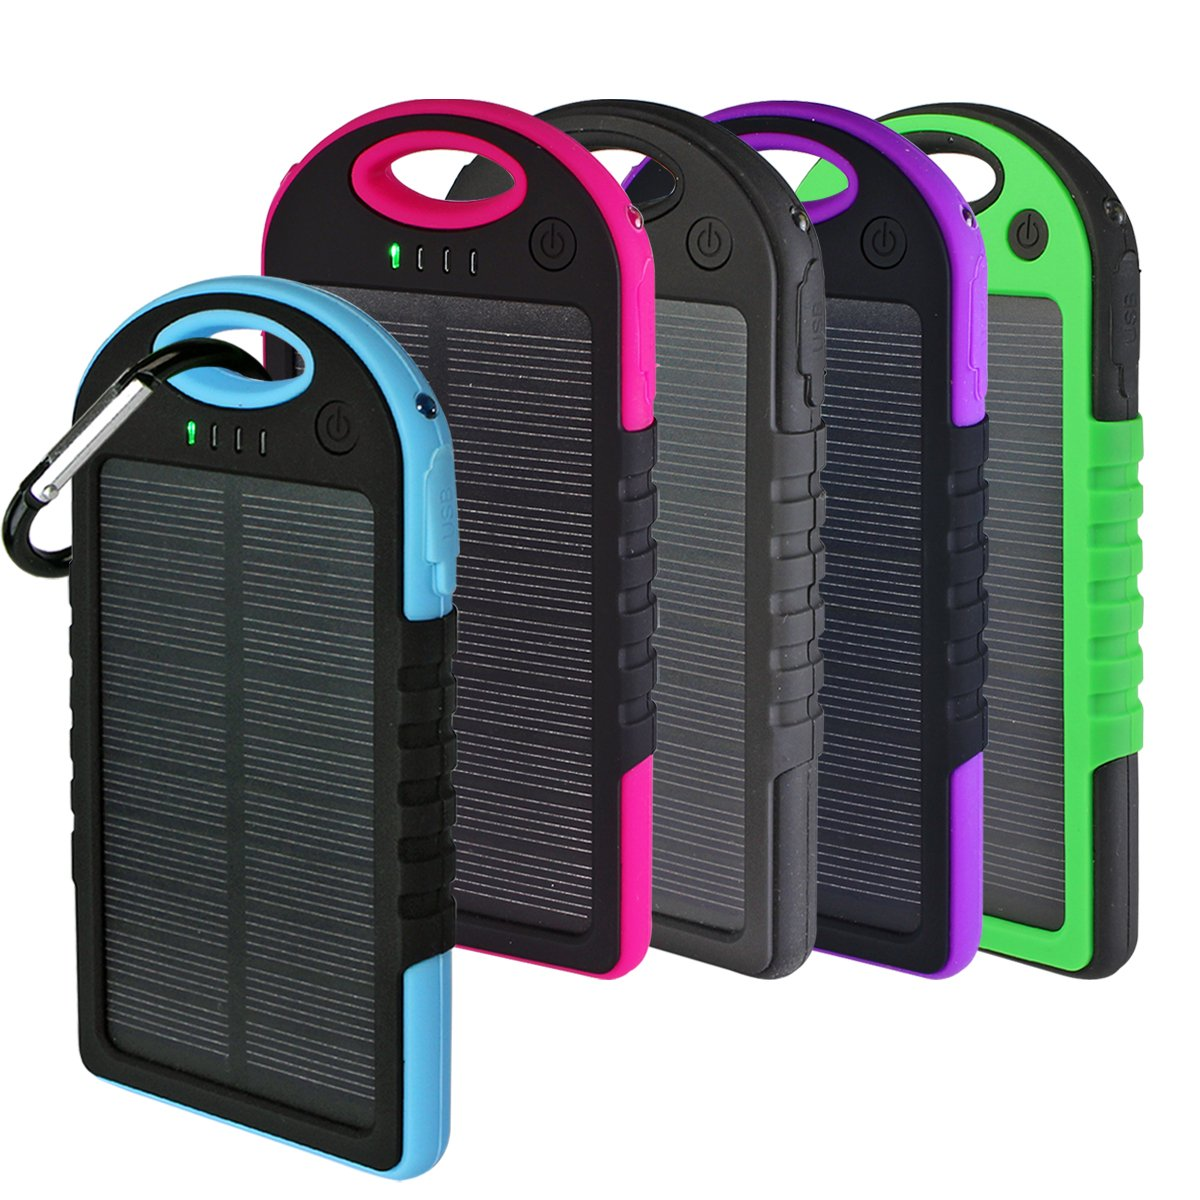 Solar Charger, Powercam, 10,000 mAh, Waterproof, Drop Resistant, Shockproof, for iPhones, iPads, Android, Samsung Phones, GPS Devices and Cameras (Purple) by PowerCam